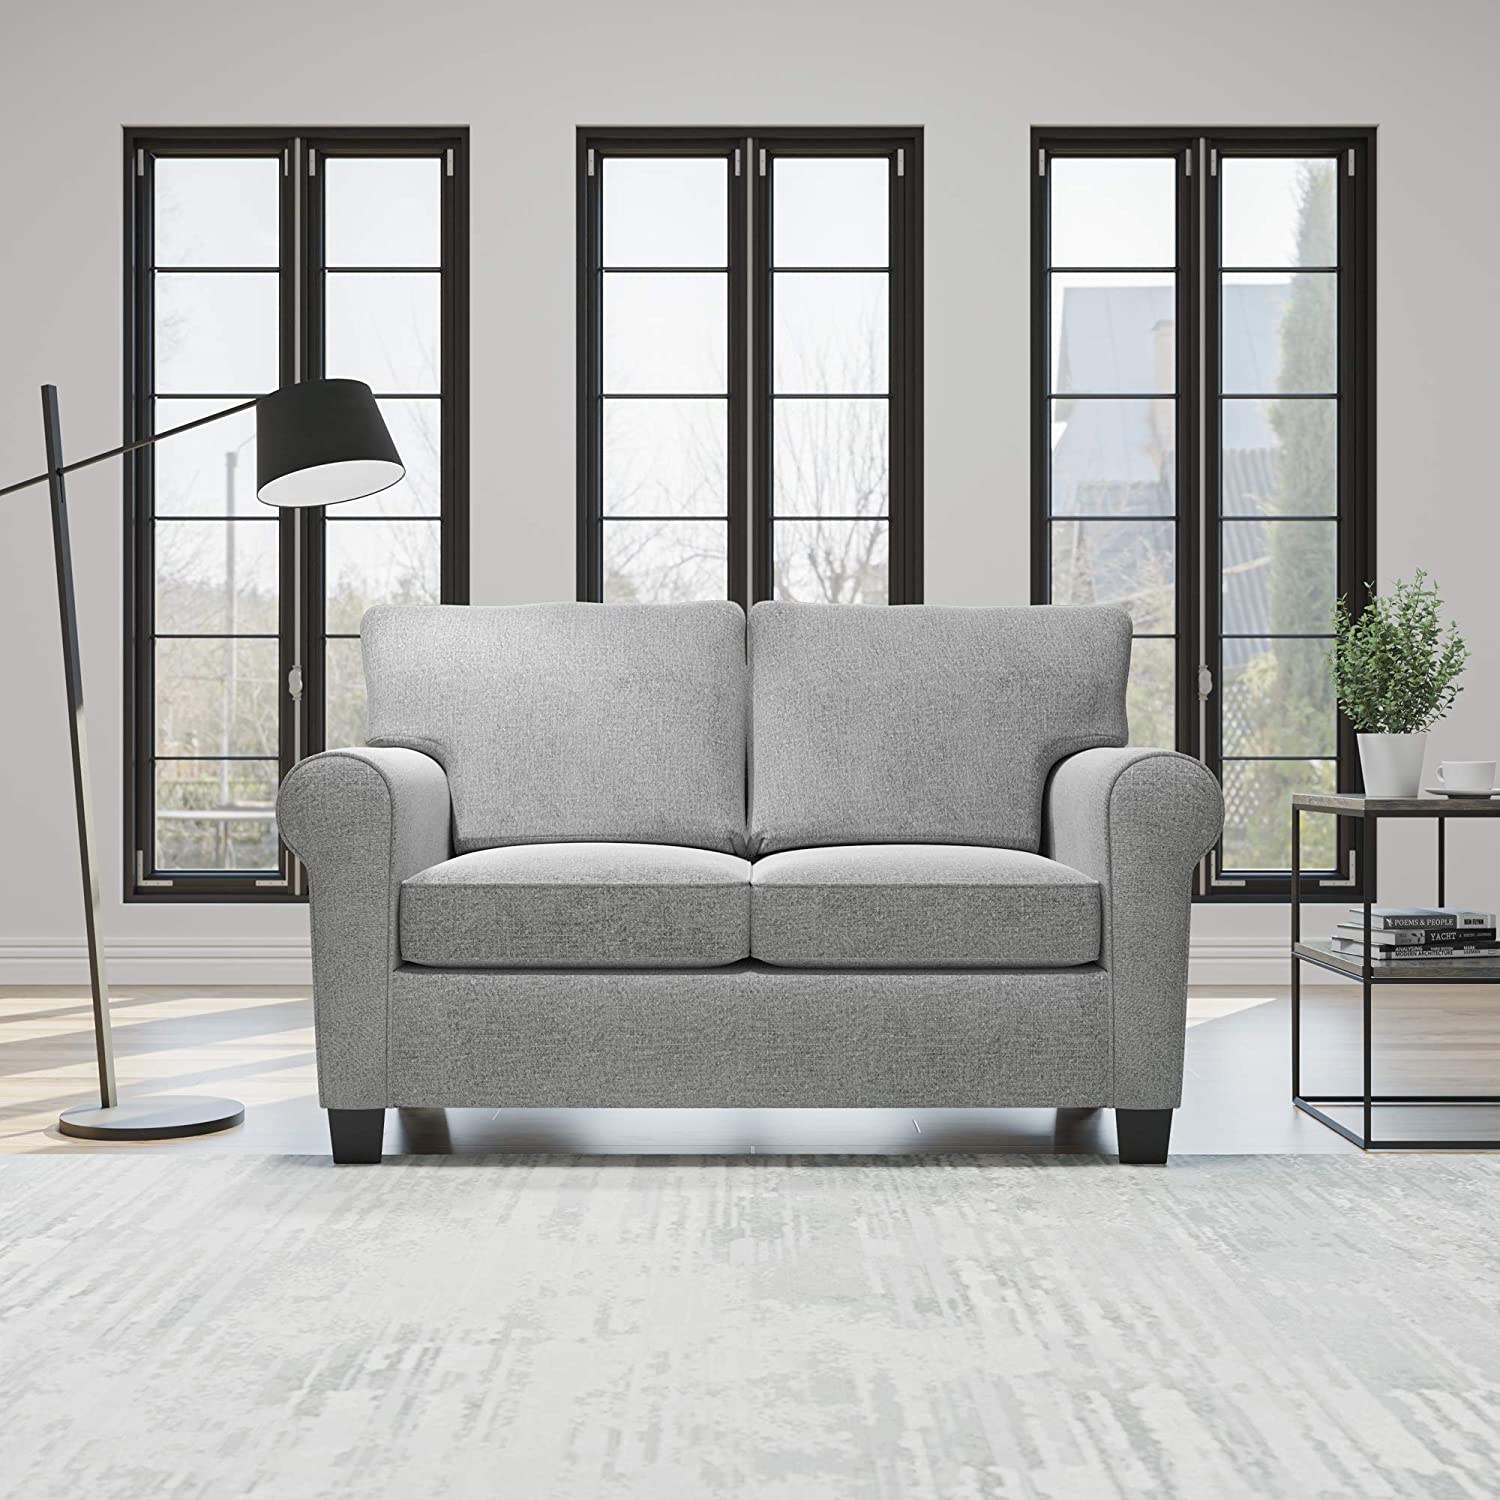 Edenbrook Willow Upholstered Sofa and Loveseat with Rolled Arms – Contemporary, Casual, Cozy, and Comfortable Love Seats, Misty Gray